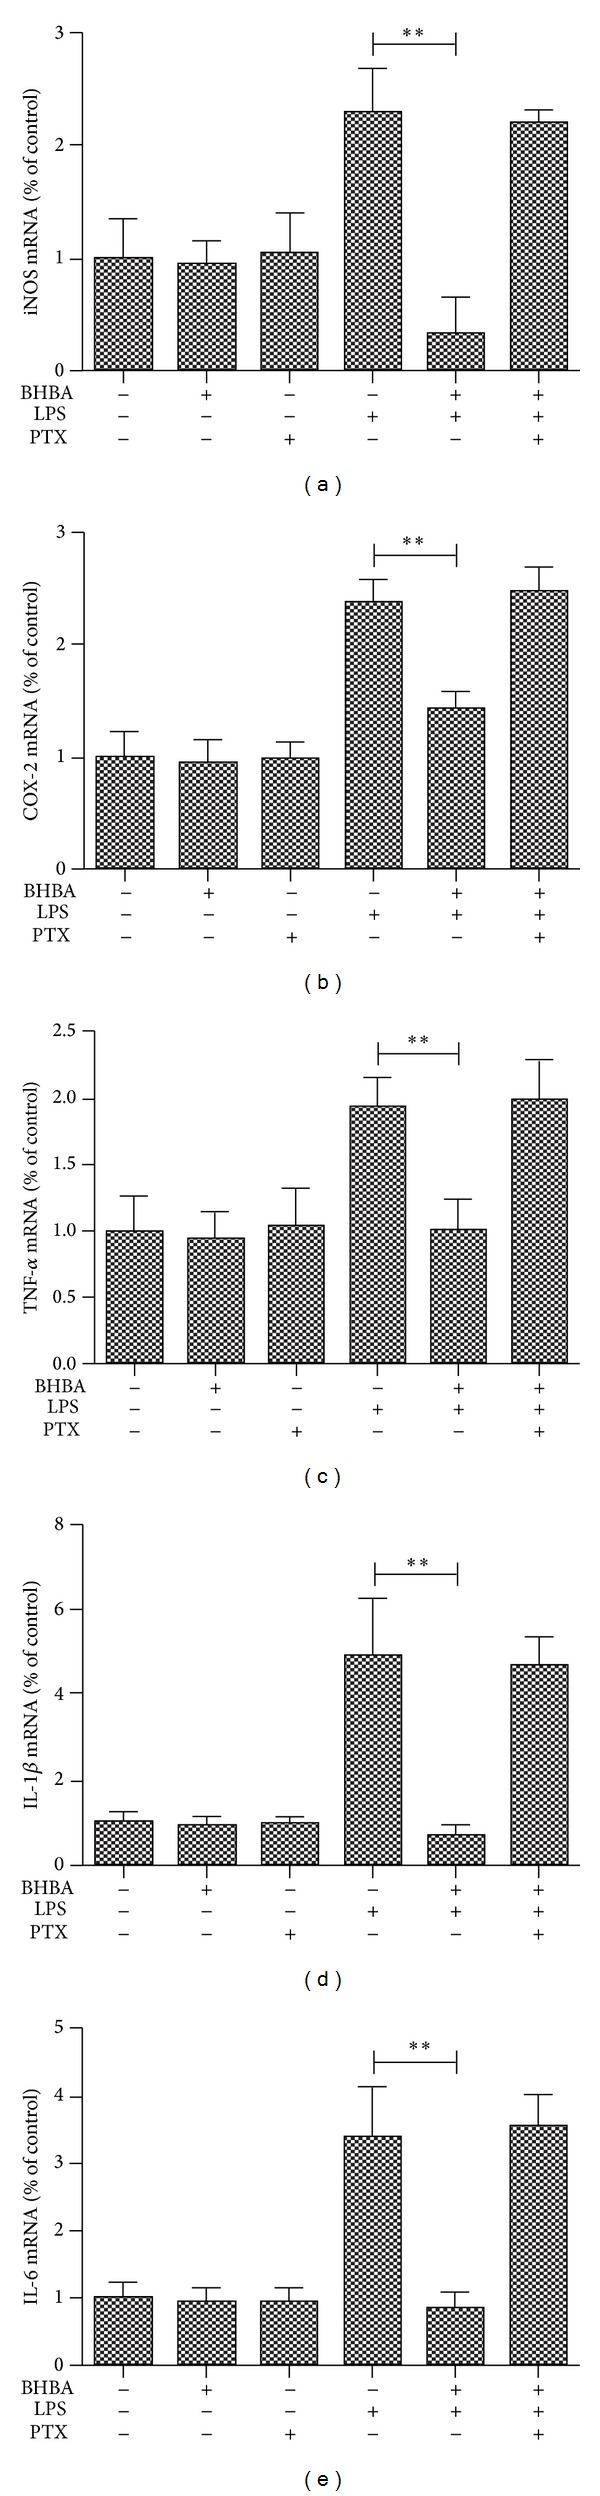 Effects of BHBA mediated by GPR109A. BV-2 cells were pretreated with vehicle or PTX for 1 h. Medium from each condition was removed and replaced with vehicle, BHBA (1.5 mM), PTX (100 ng/mL), LPS (1 μ g/mL), BHBA + LPS, or BHBA + LPS + PTX. BV-2 cells were sampled at 4 h. The mRNA of proinflammatory enzymes and proinflammatory cytokines were determined by quantitative real-time PCR. Attenuation by BHBA of induced mRNA of iNOS (a), COX-2 (b), TNF- α (c), IL-1 β (d), and IL-6 (e) from BV-2 cells; this effect is abolished with pretreatment with PTX (** P